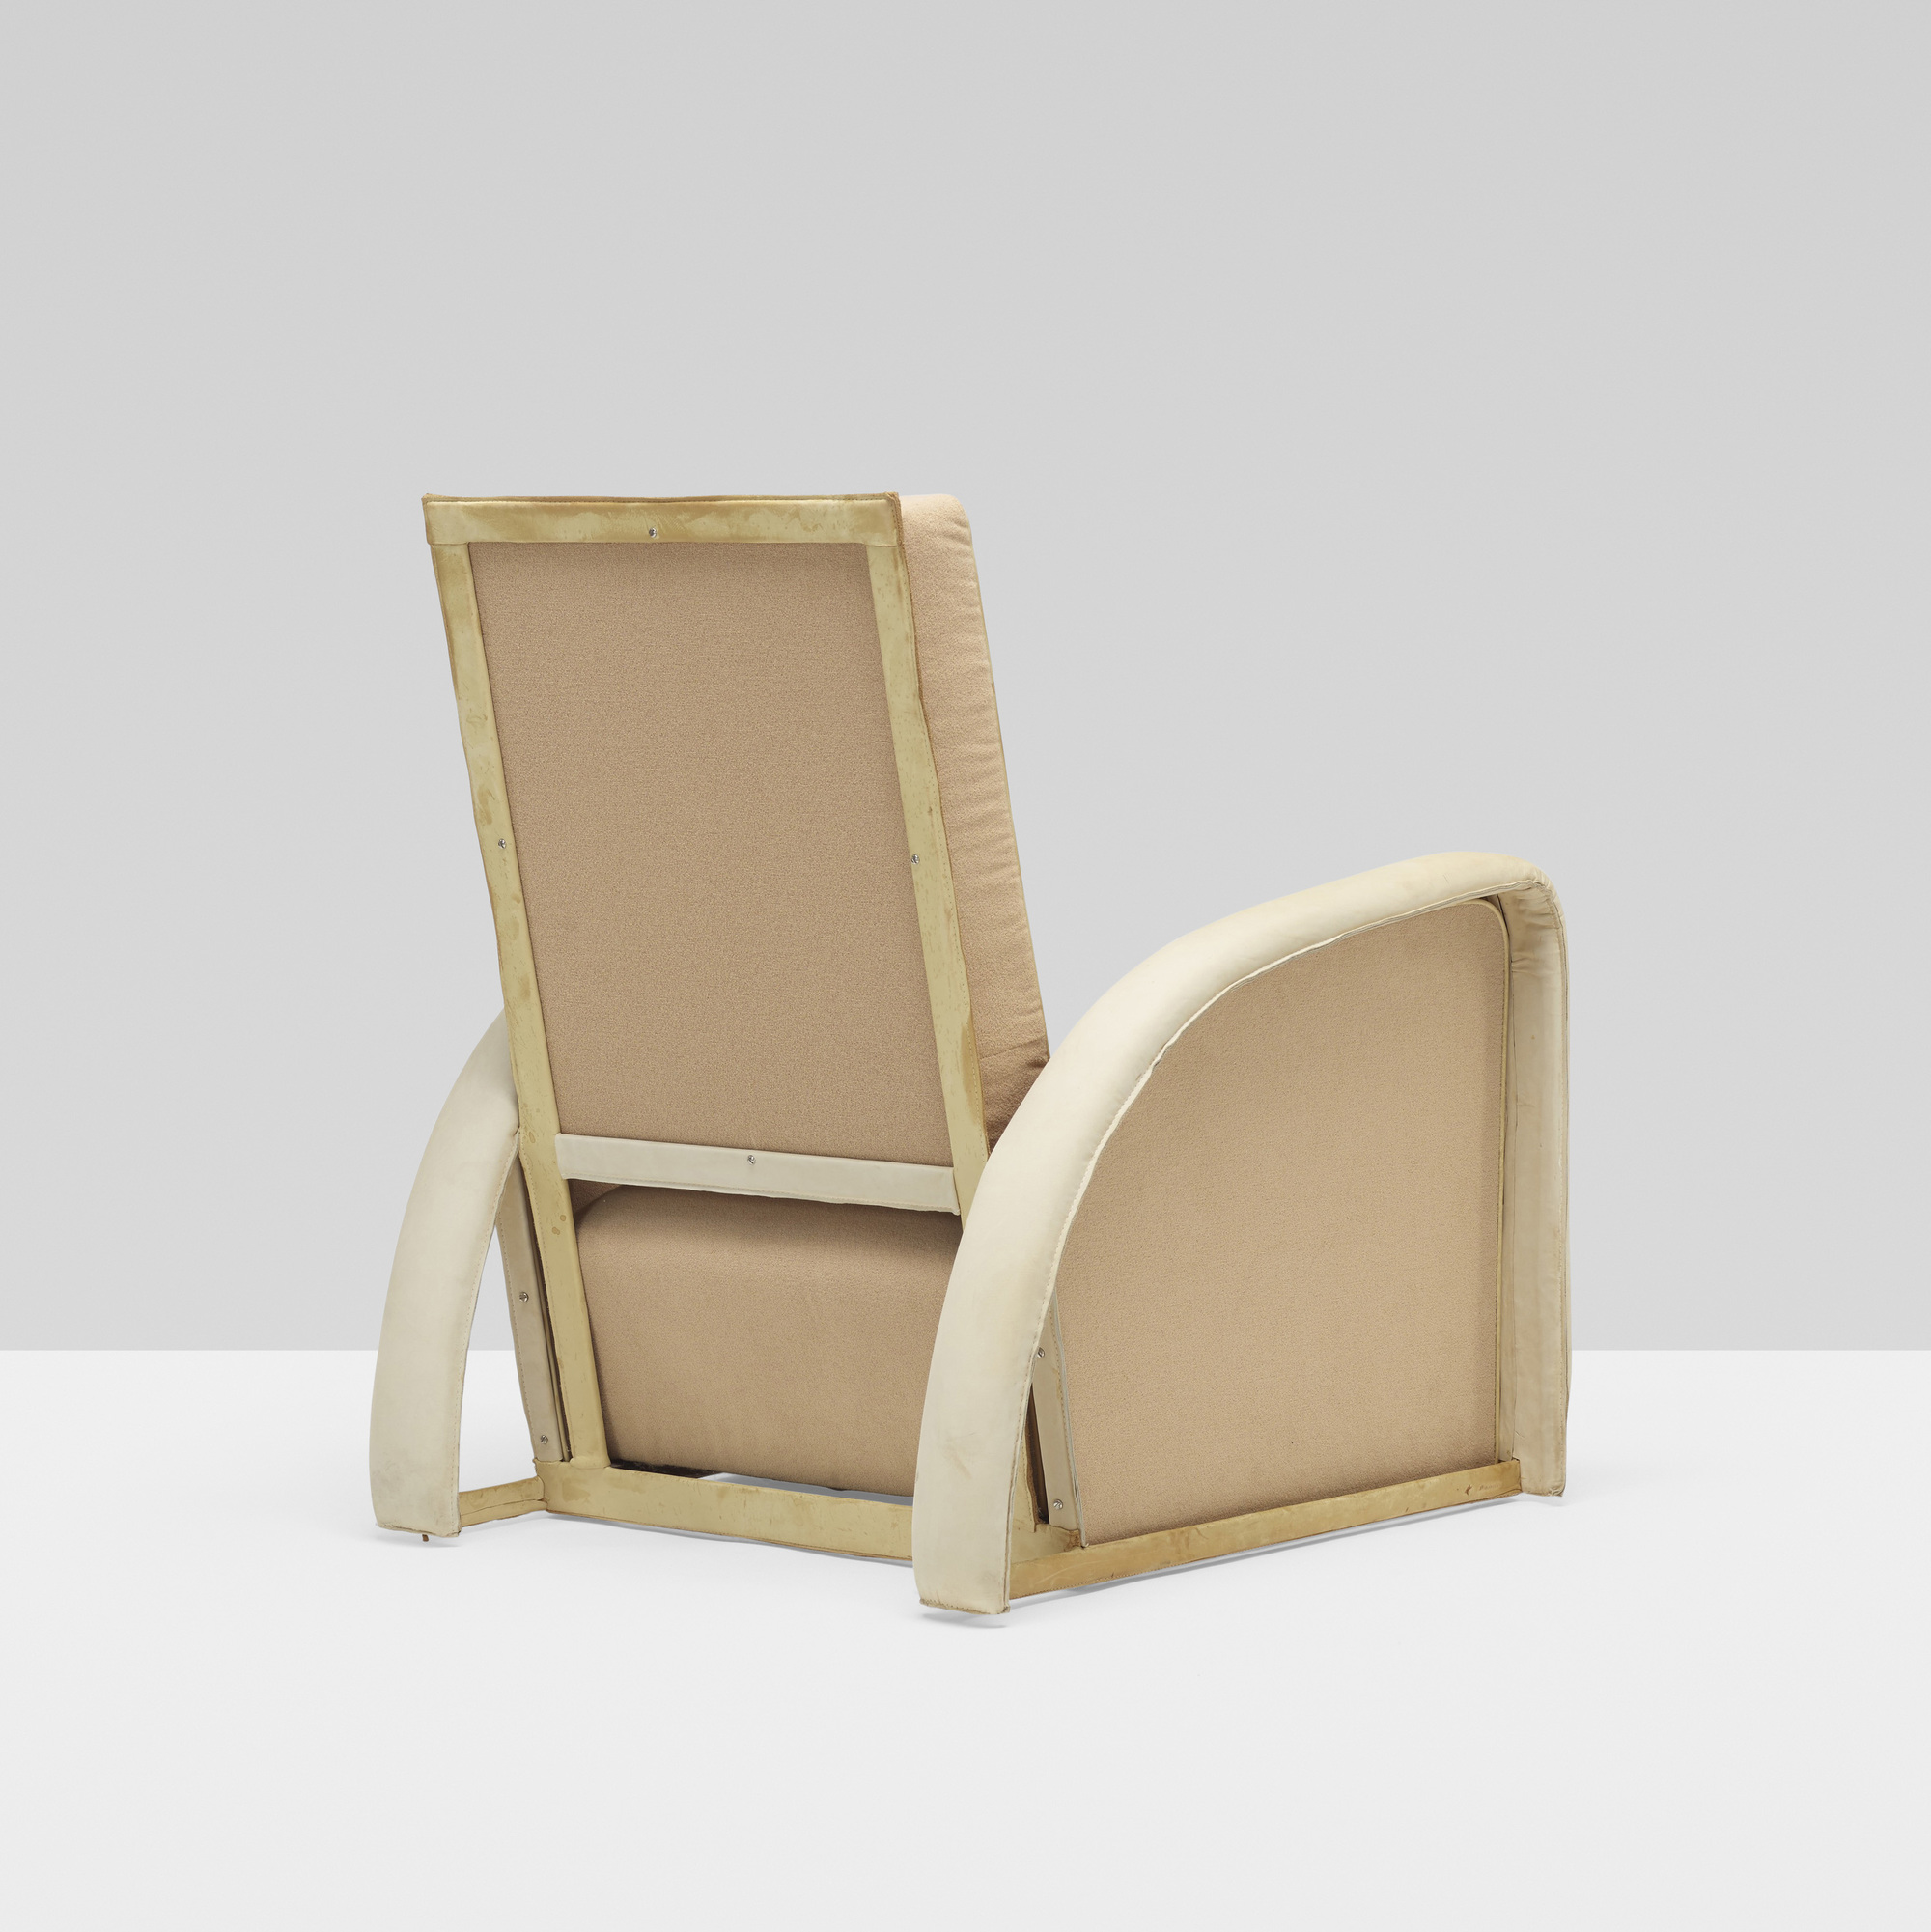 398: Jacques Adnet / armchair (3 of 4)